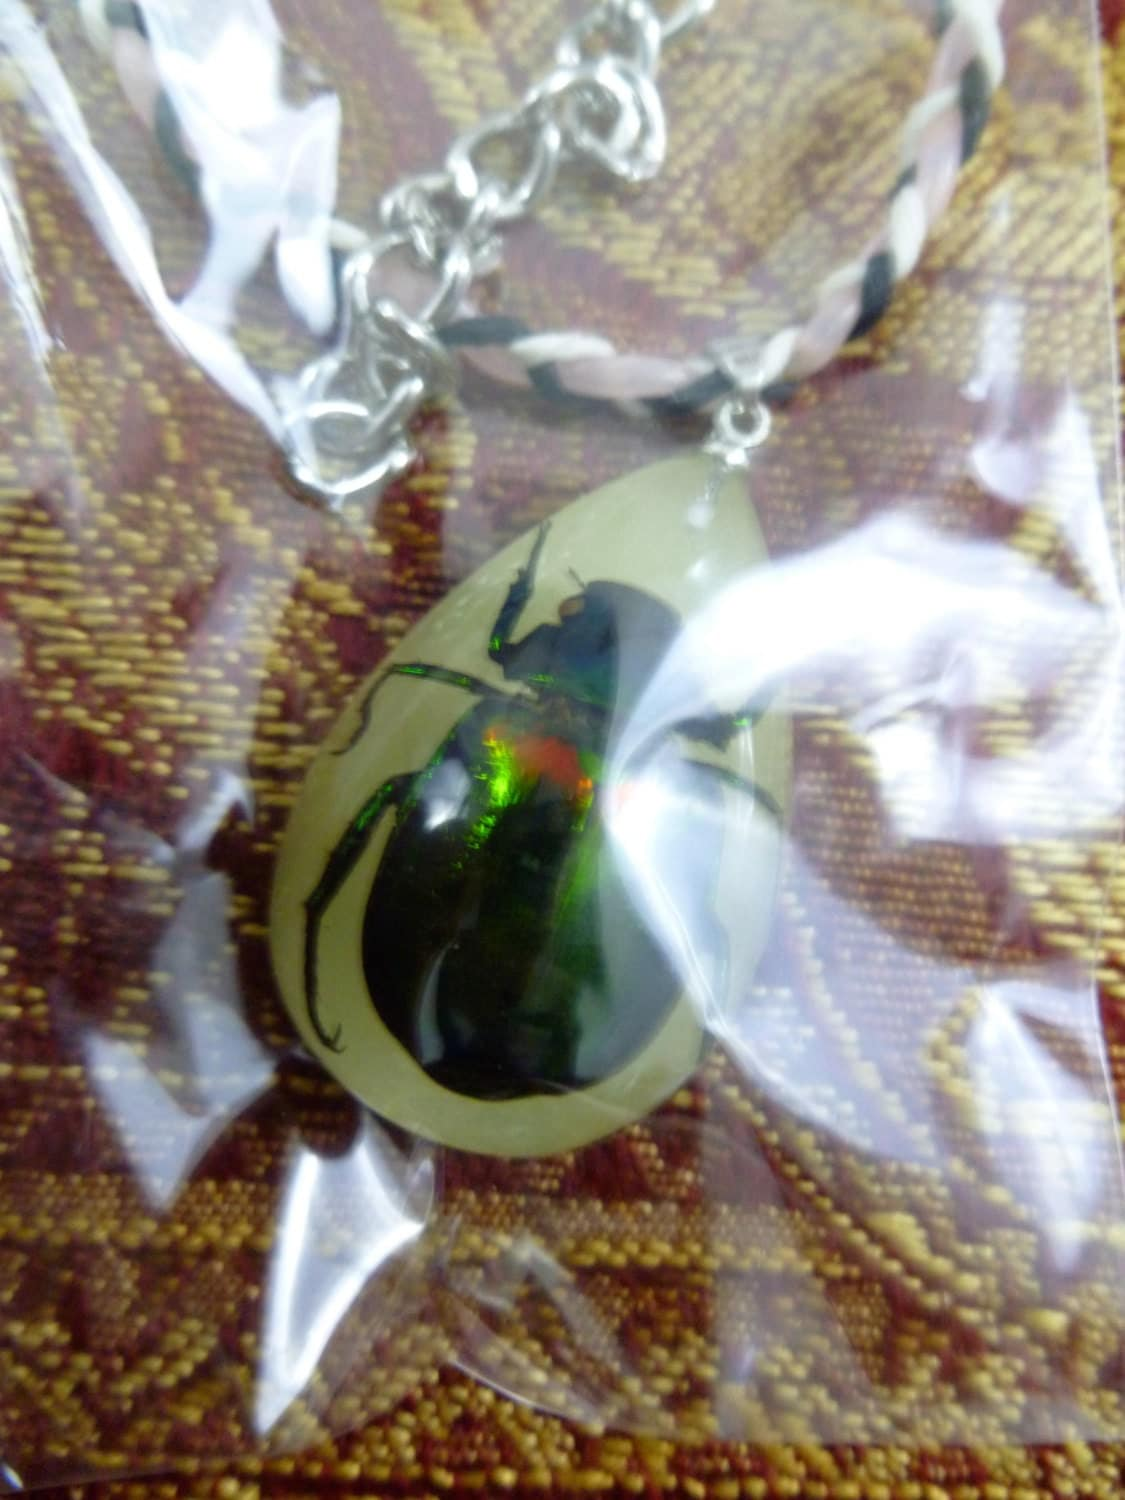 Japanese Beetle Real Beetle in Lucite your choice Amber or Glow in the Dark and your choice of necklace